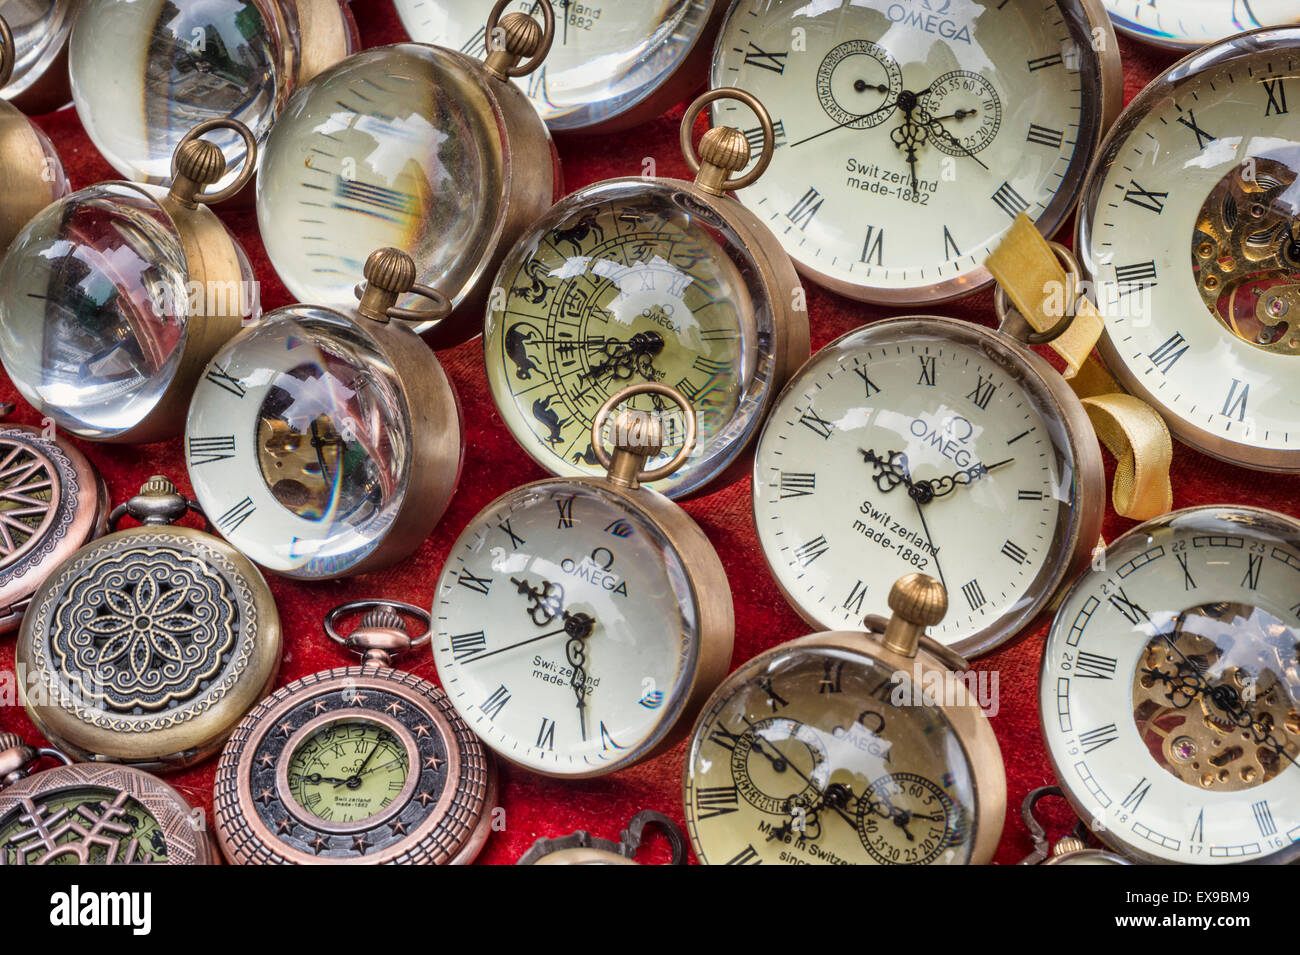 Collection of old pocket watches at a flea market (Cat Street Market on Upper Lascar Row in Hong Kong, China) - Stock Image